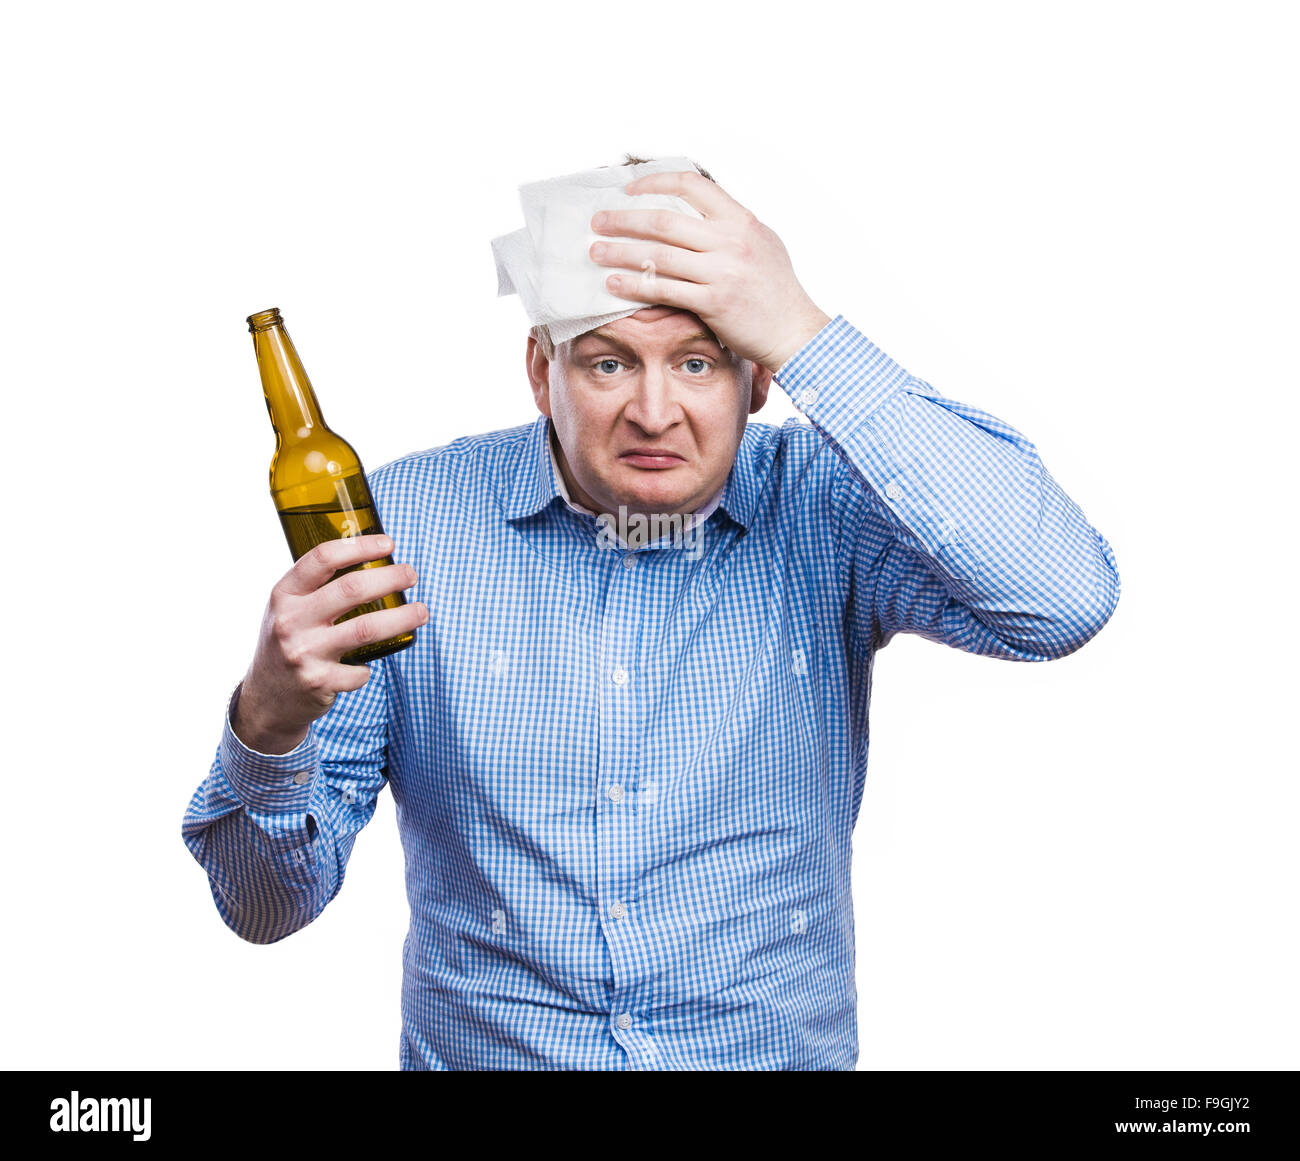 Funny Young Drunk Man Holding A Beer Bottle Studio Shot On White